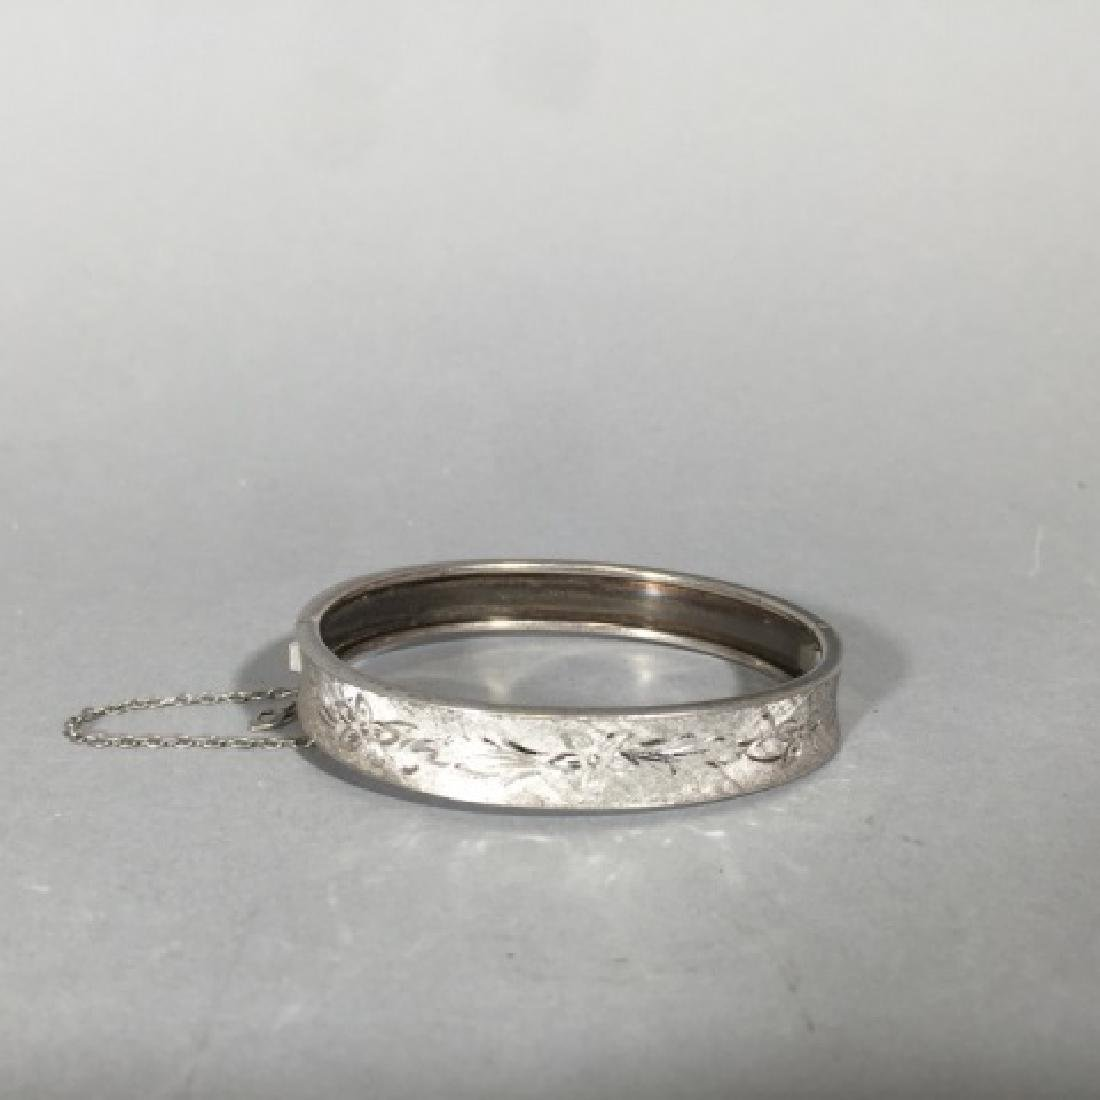 Sterling Silver Bangle Bracelet w Chased Floral - 4